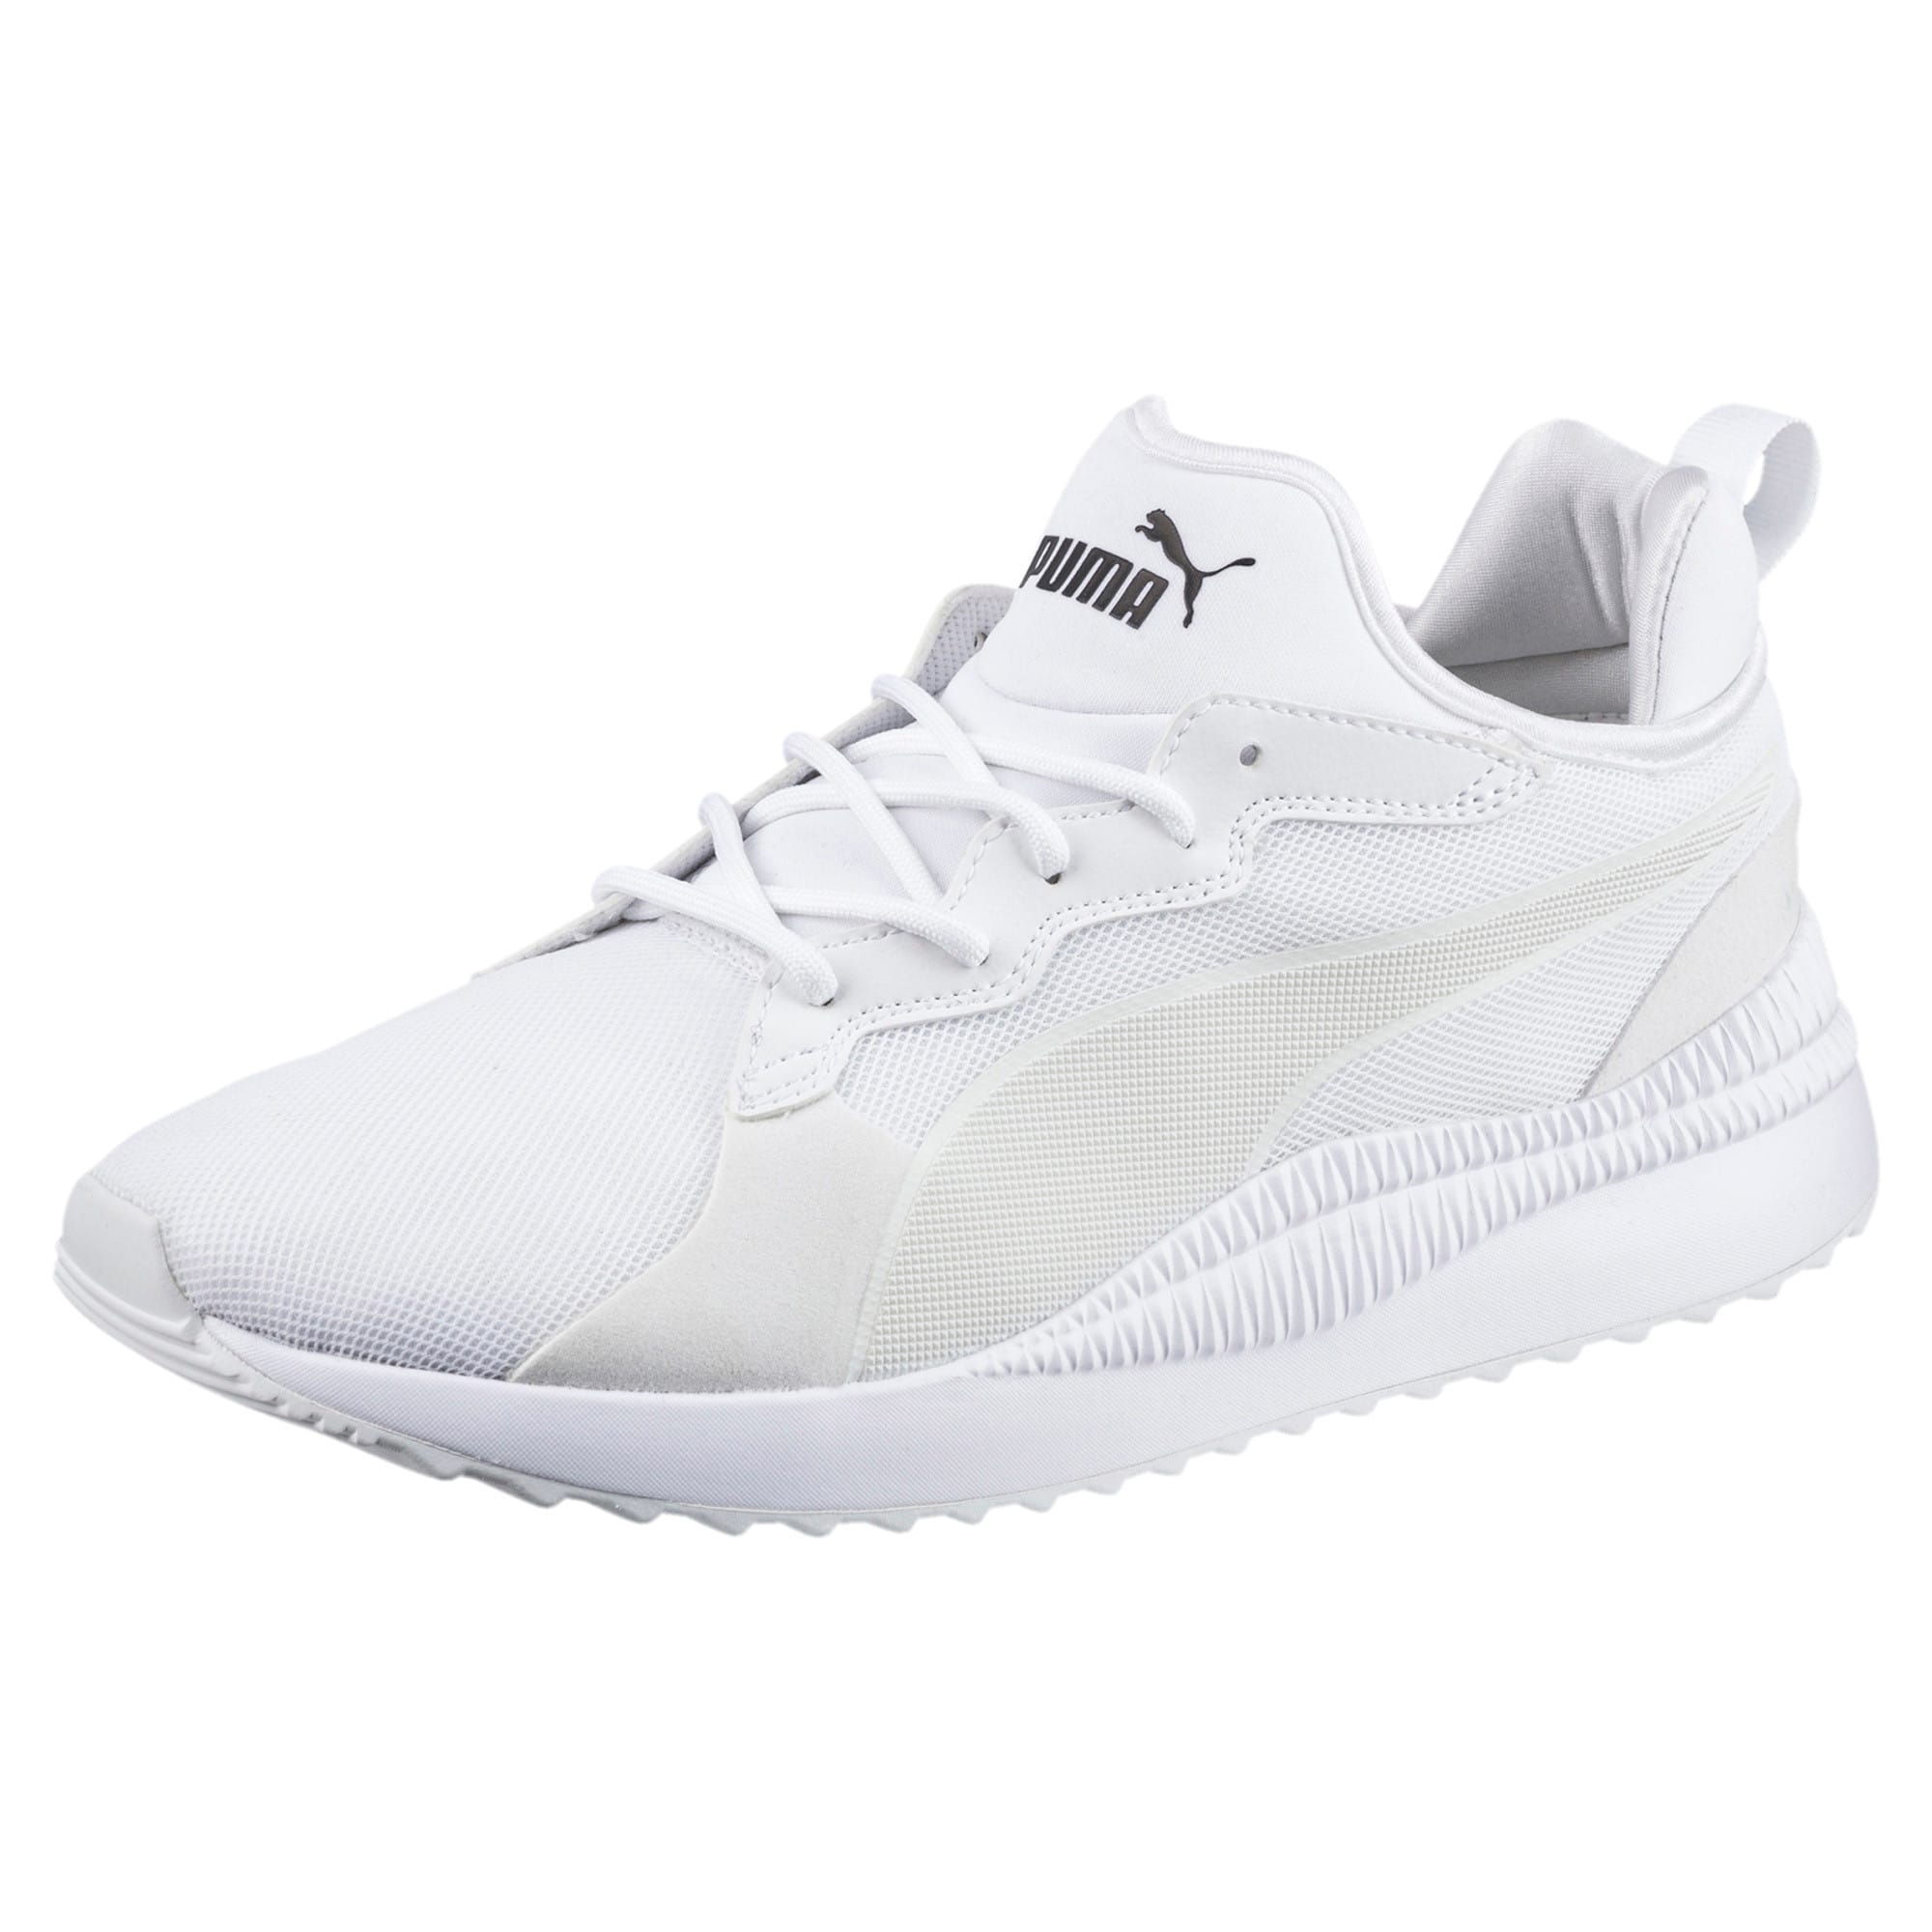 Thumbnail 1 of Pacer Next Trainers, Puma White-Puma White, medium-IND